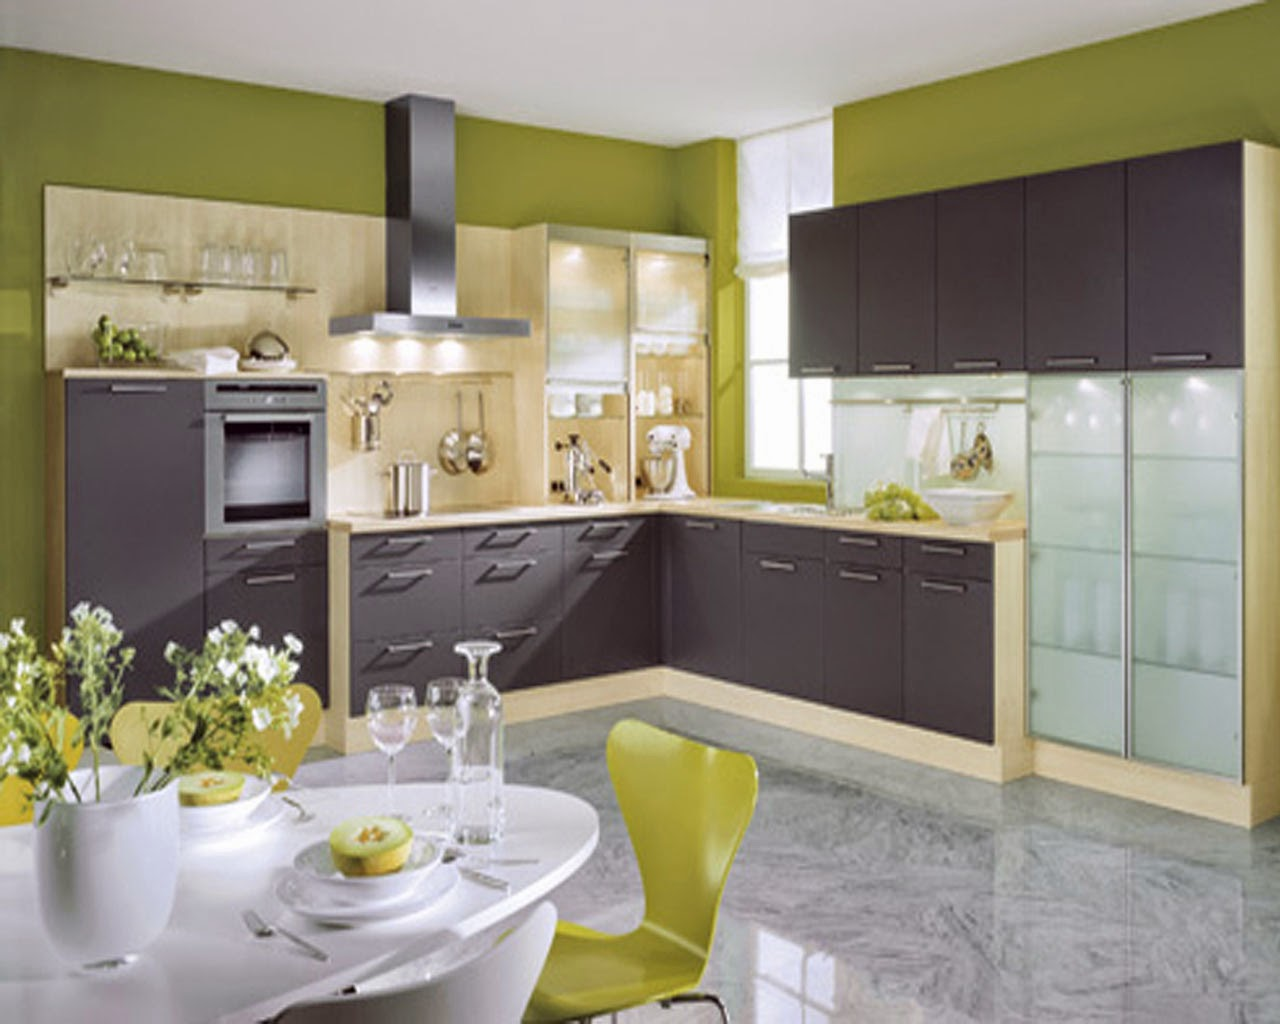 Kitchen designing ideas 2014 freshnist design for Kitchens by design